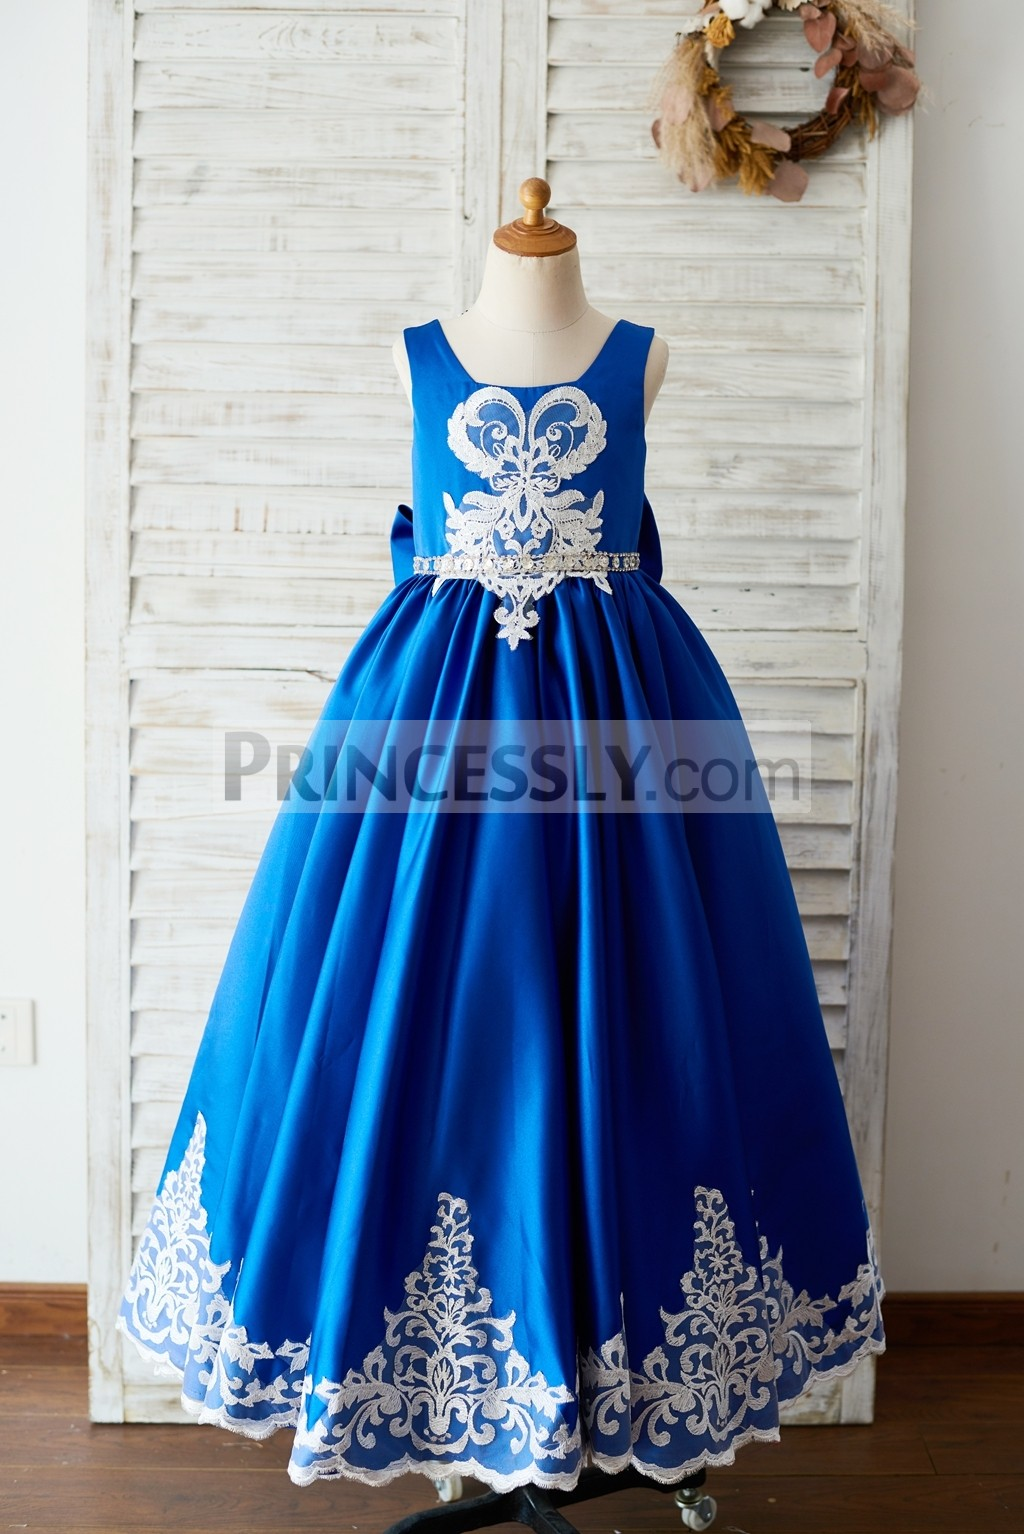 Princessly.com-K1003651-Royal Blue Satin Square Neck Wedding Party Flower Girl Dress with Lace Trim-31